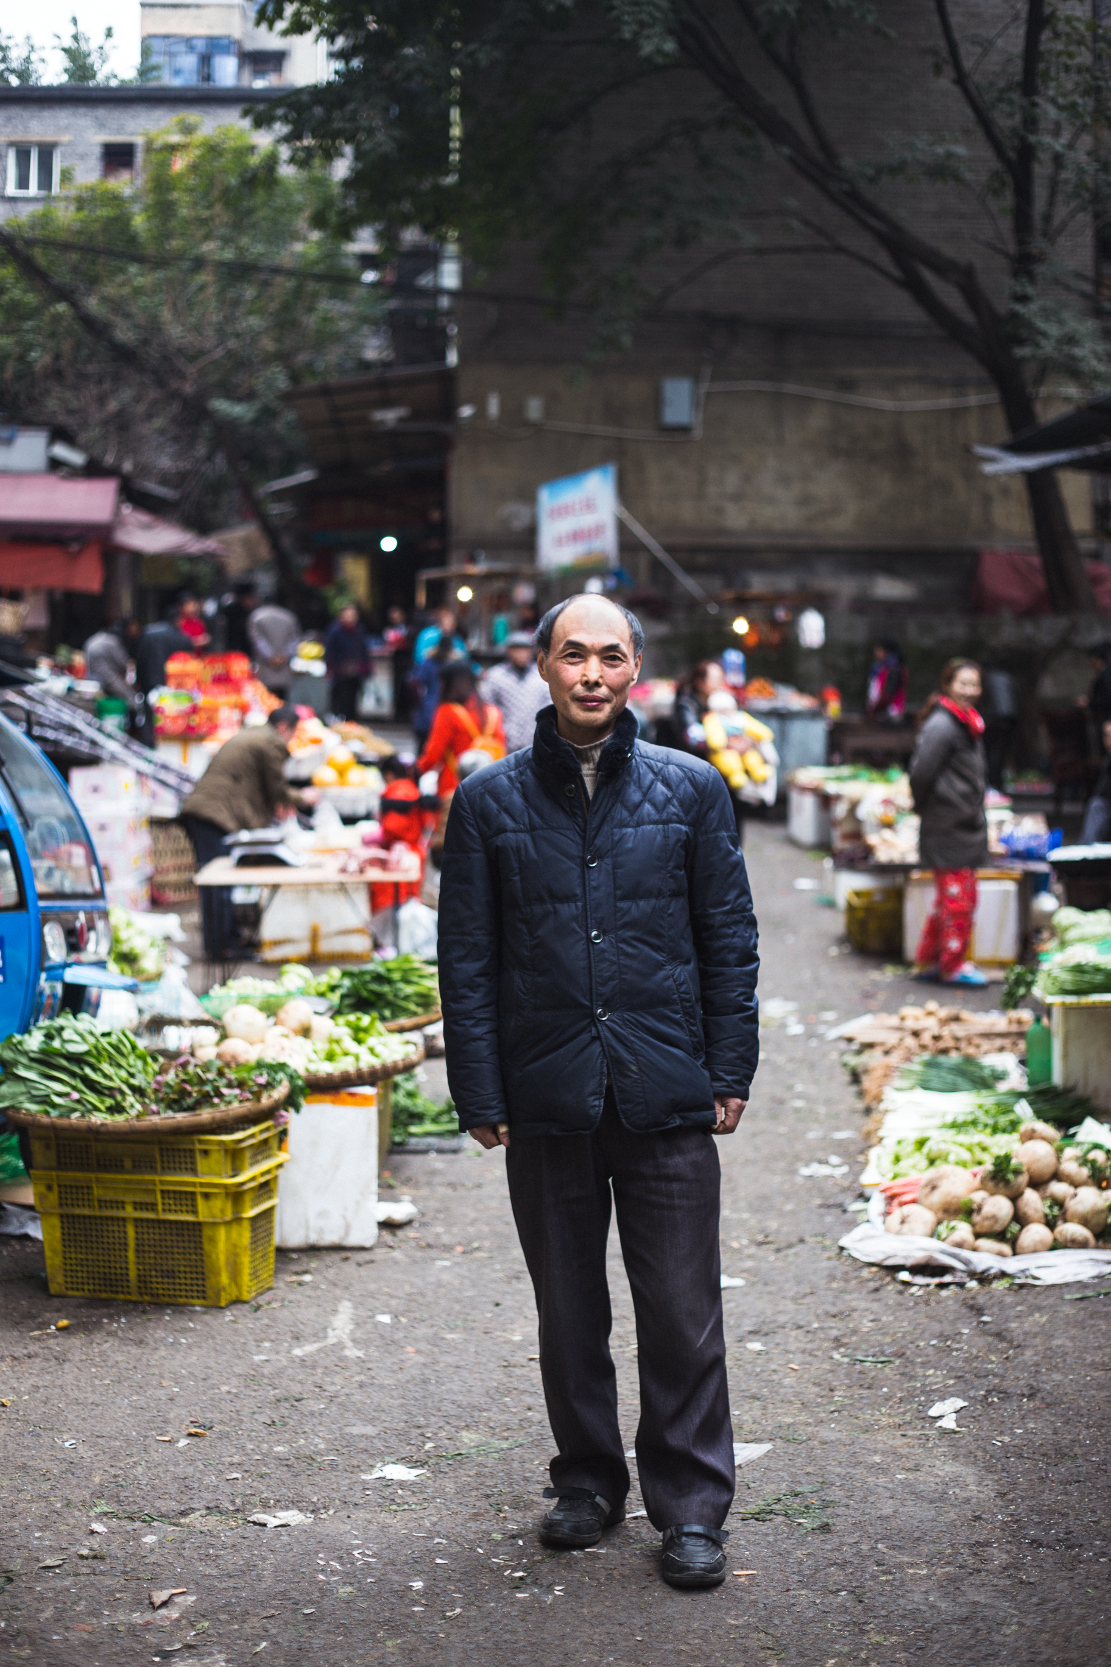 """For now at least, I'll be staying here. Everything just works better in the city, employment, healthcare provision, education. For me to go back would require huge developments like this in the countryside.""  Qing Gumao, Chongqing February 2017"